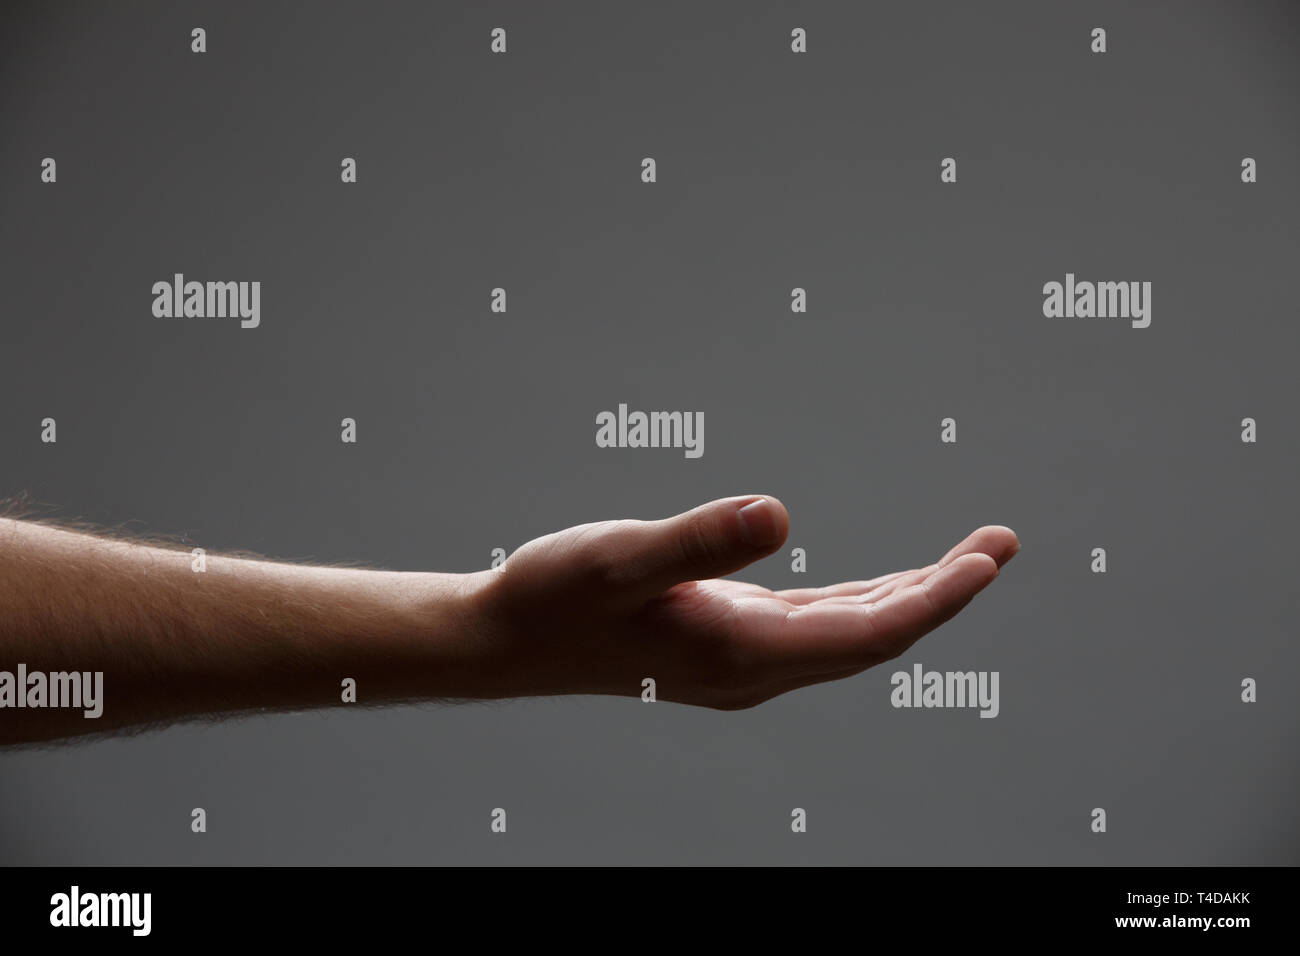 Photo of outstretched hand palm up on empty gray background. Stock Photo